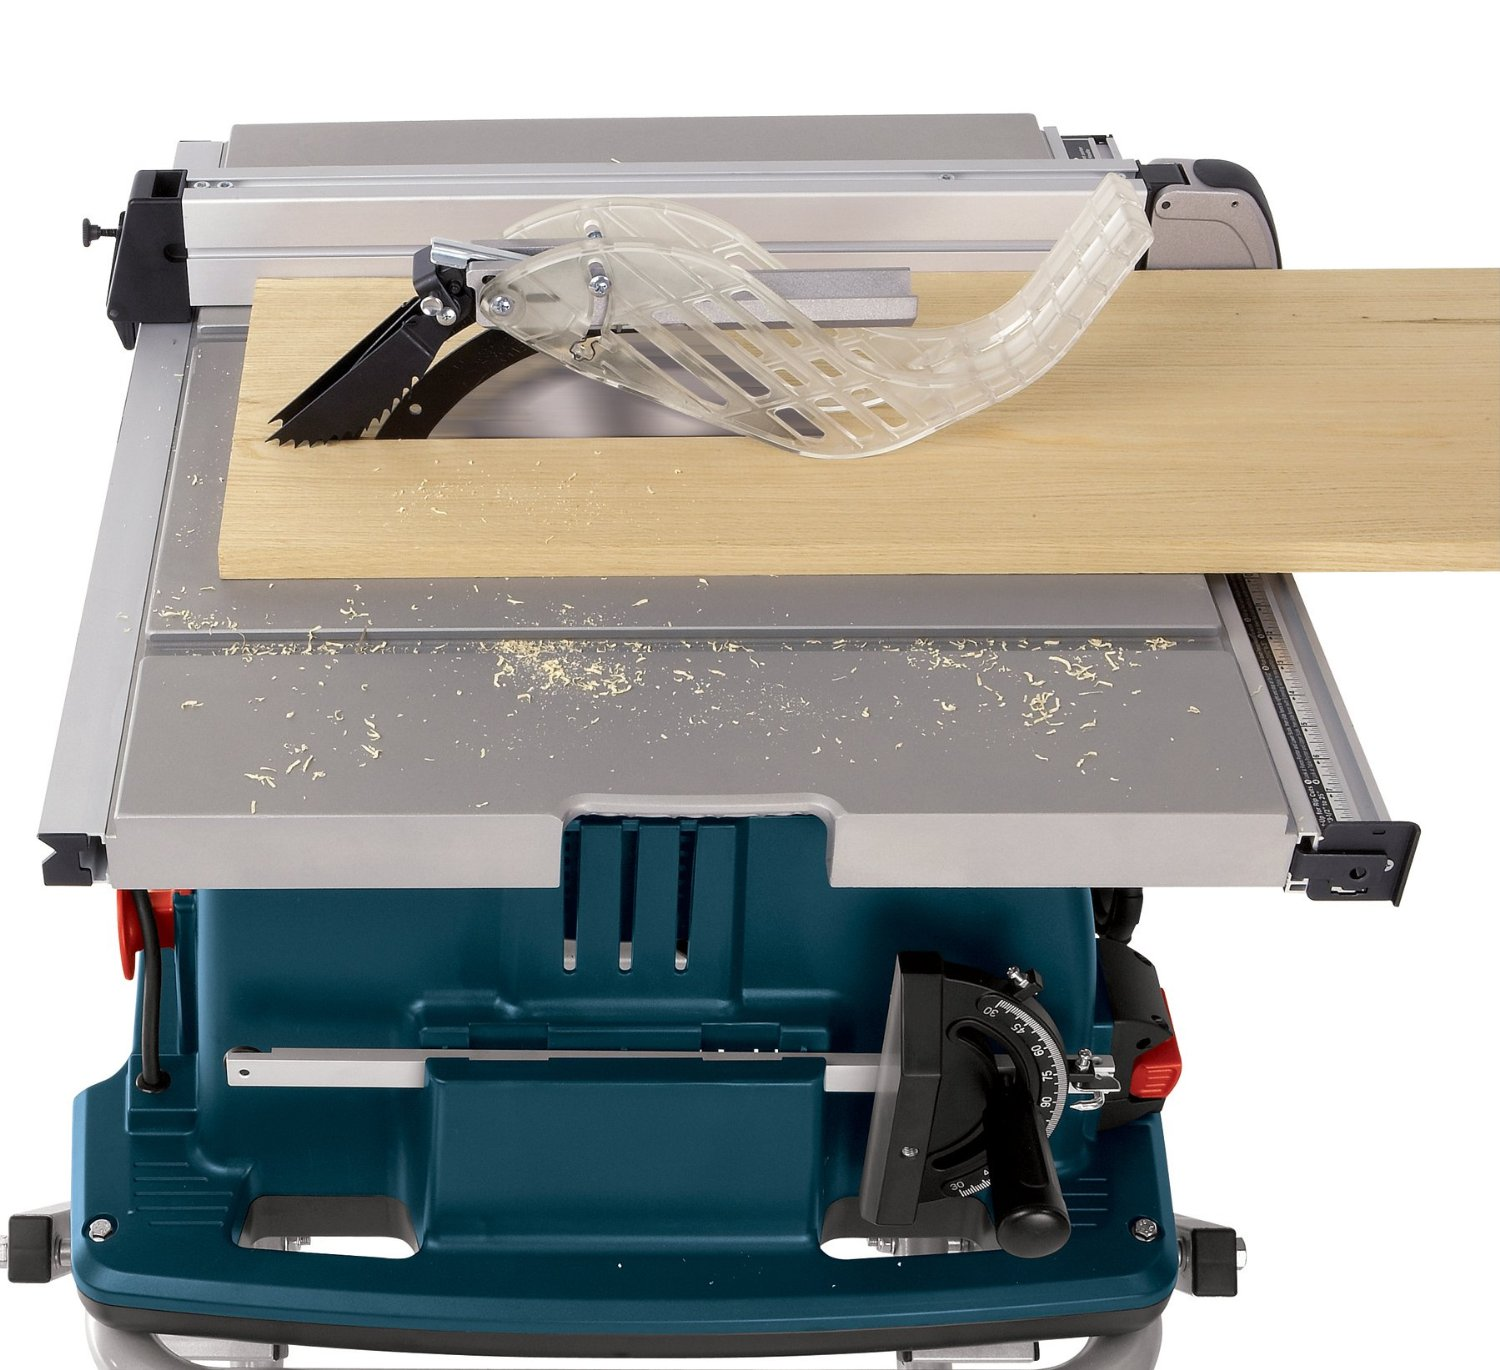 Bosch 4100 09 10 Inch Table Saw